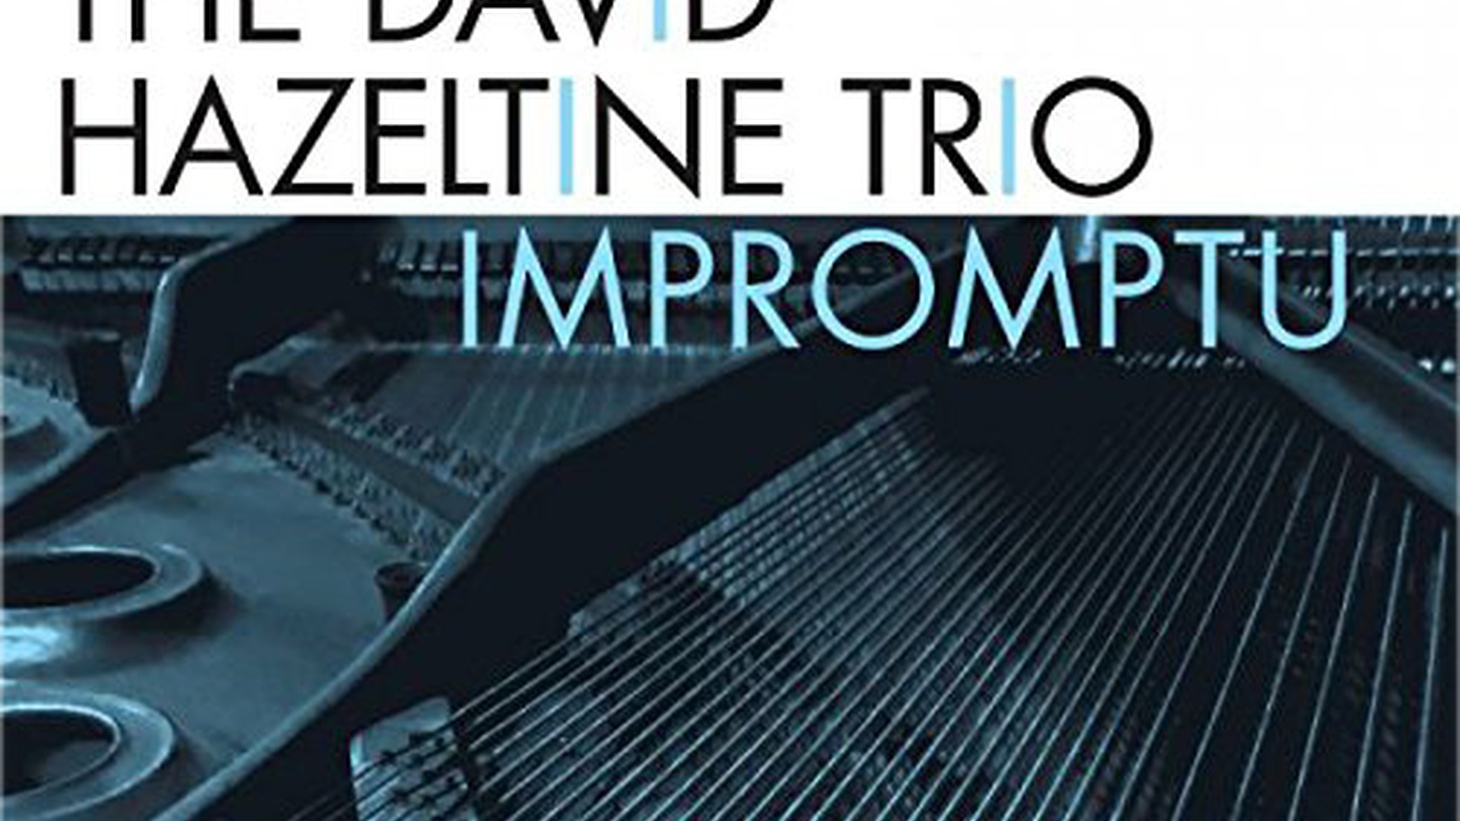 Featuring the lilting and blissful music of Debussy, Michael Galasso, J.S. Bach, Geri Allen, and David Hazeltine.